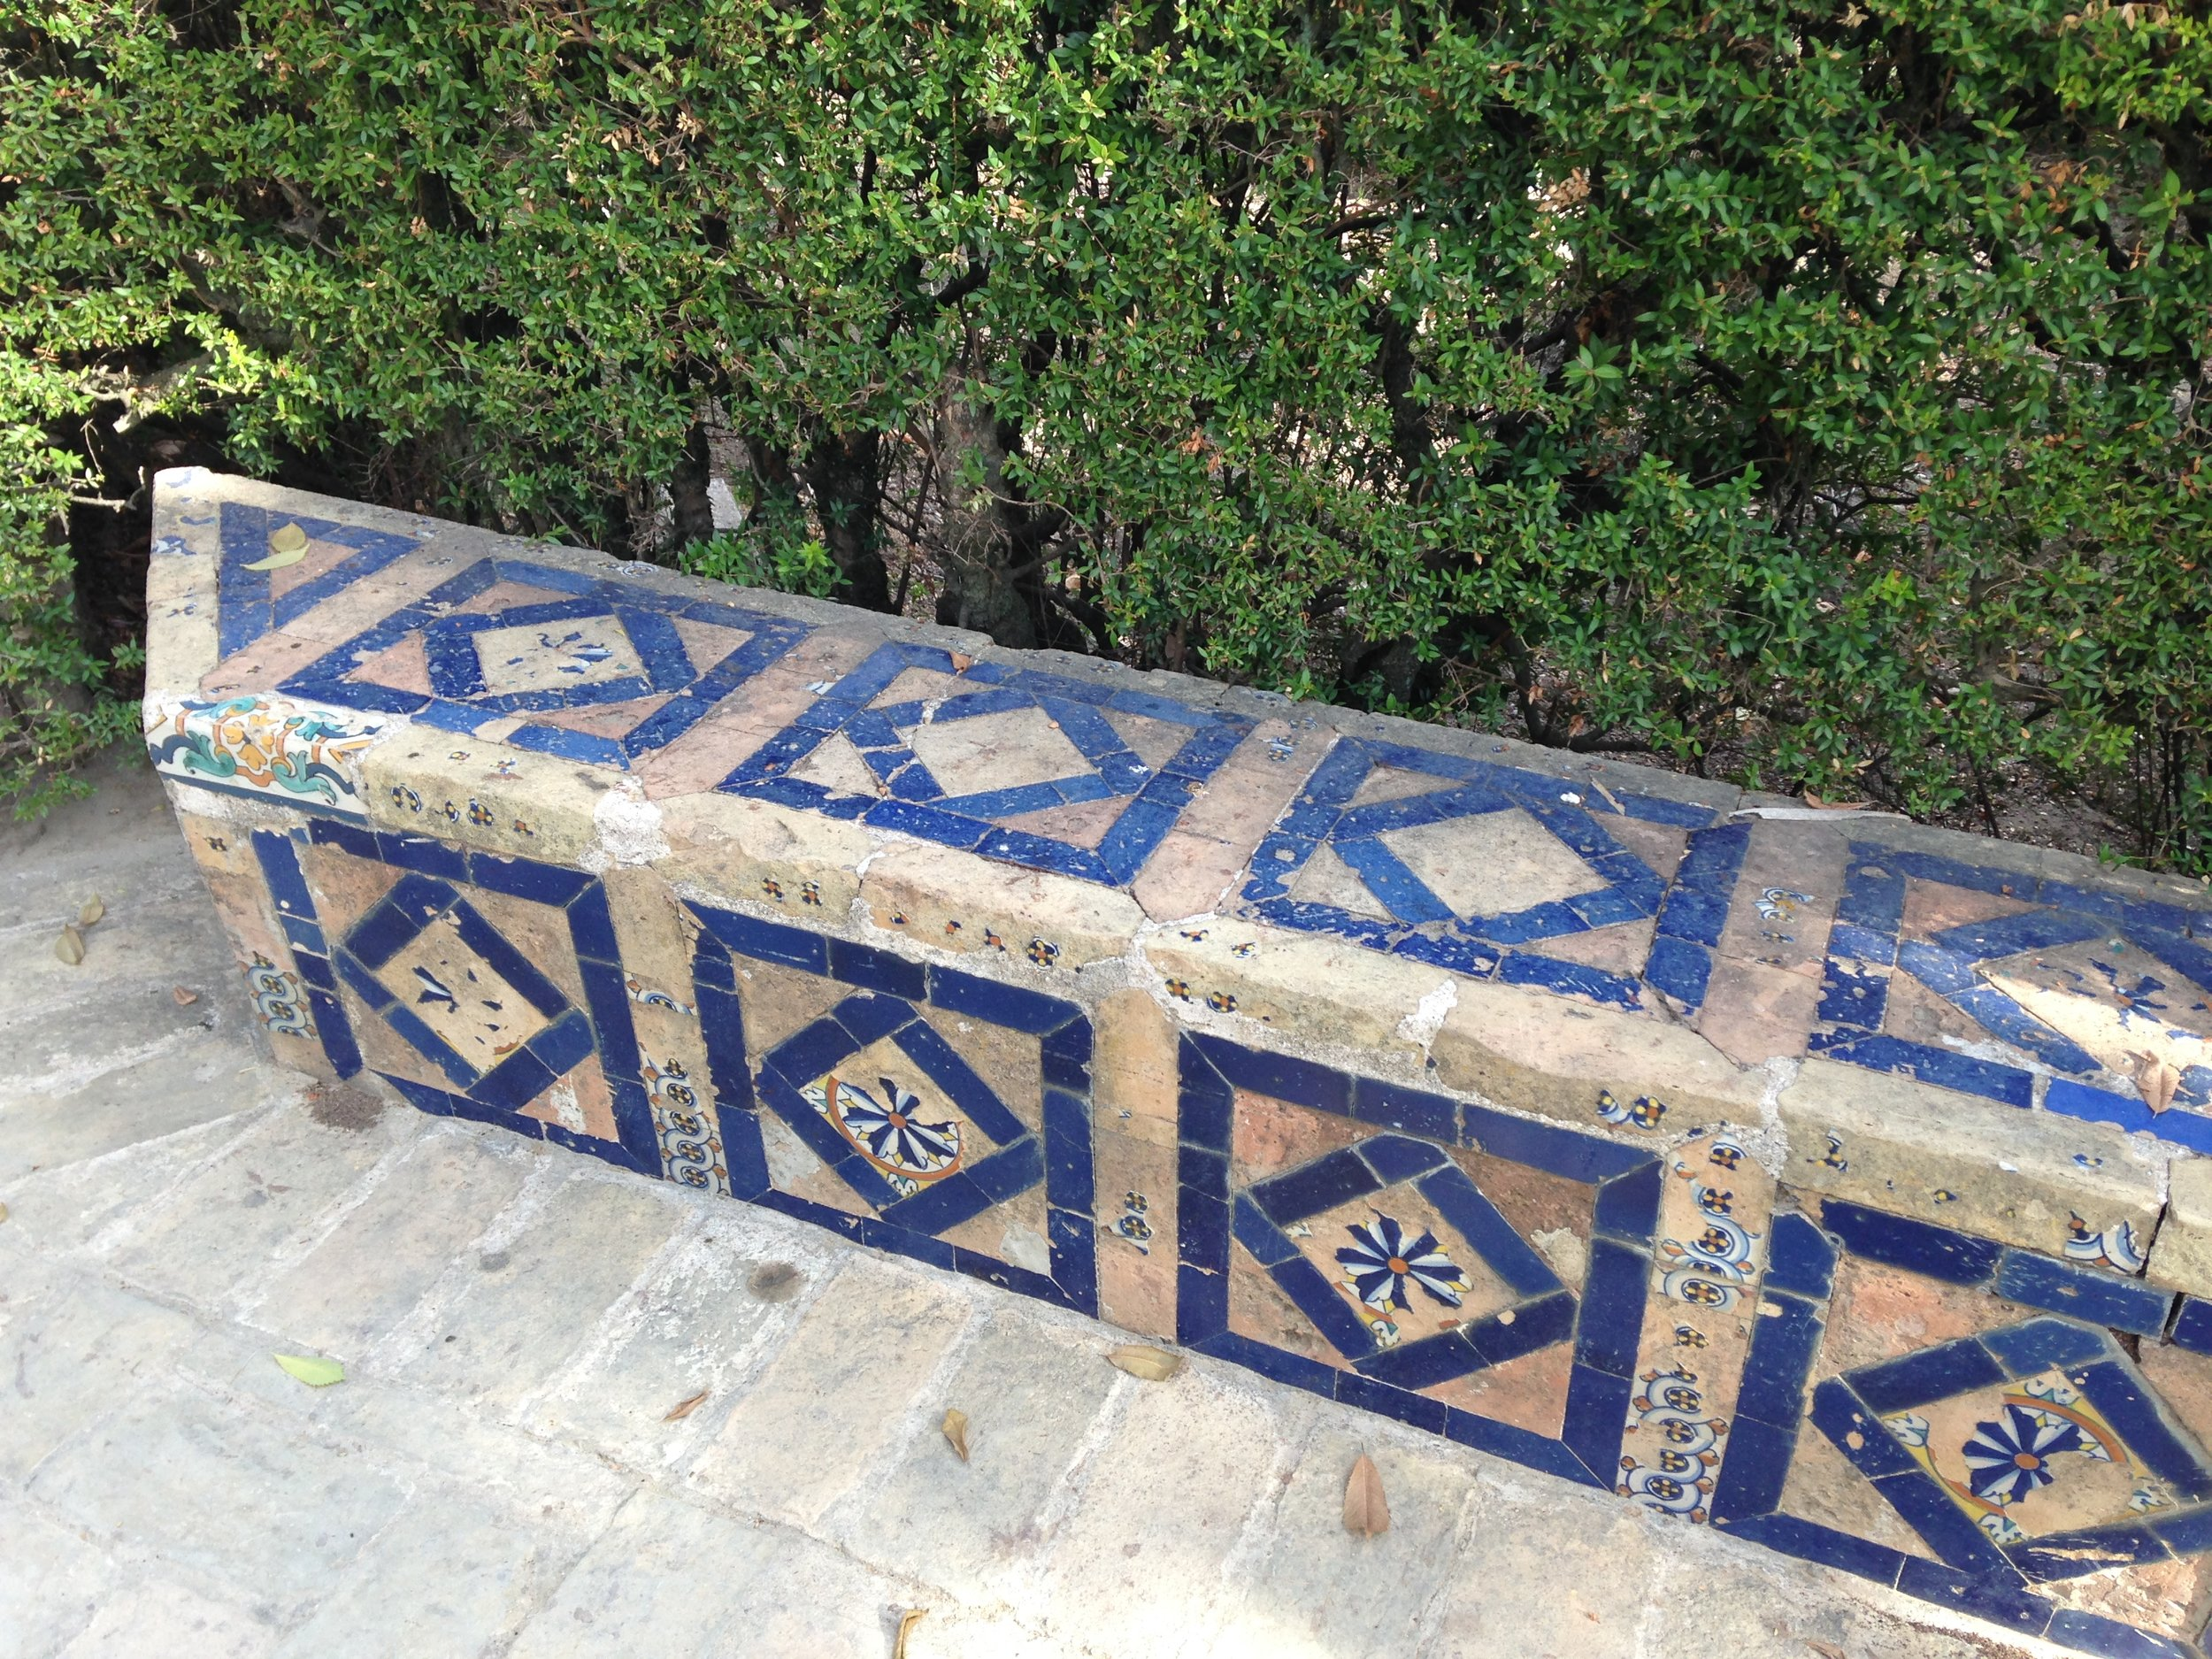 A bench with blue geometric designs, Royal Alcazar, Seville